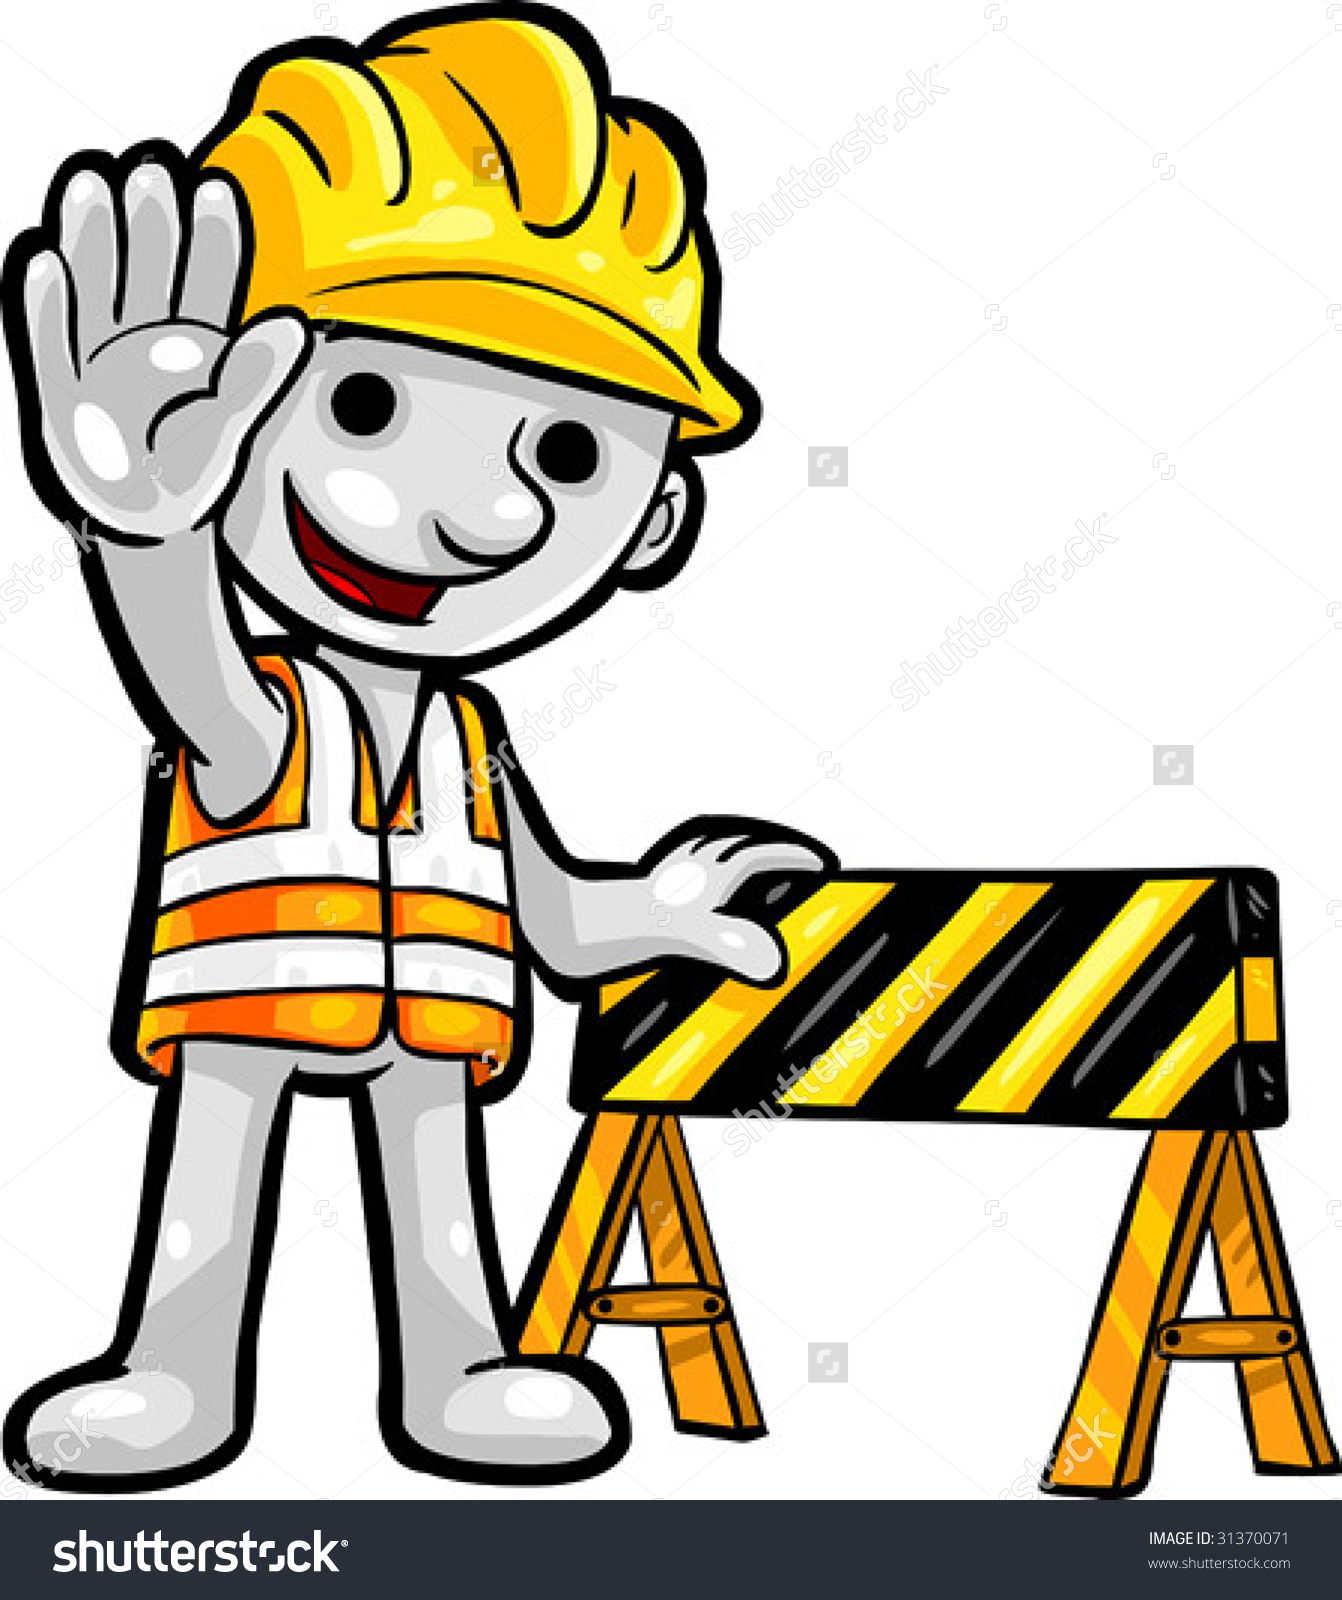 Vector Clip Art Illustration Smartoon Construction Stock Vector.